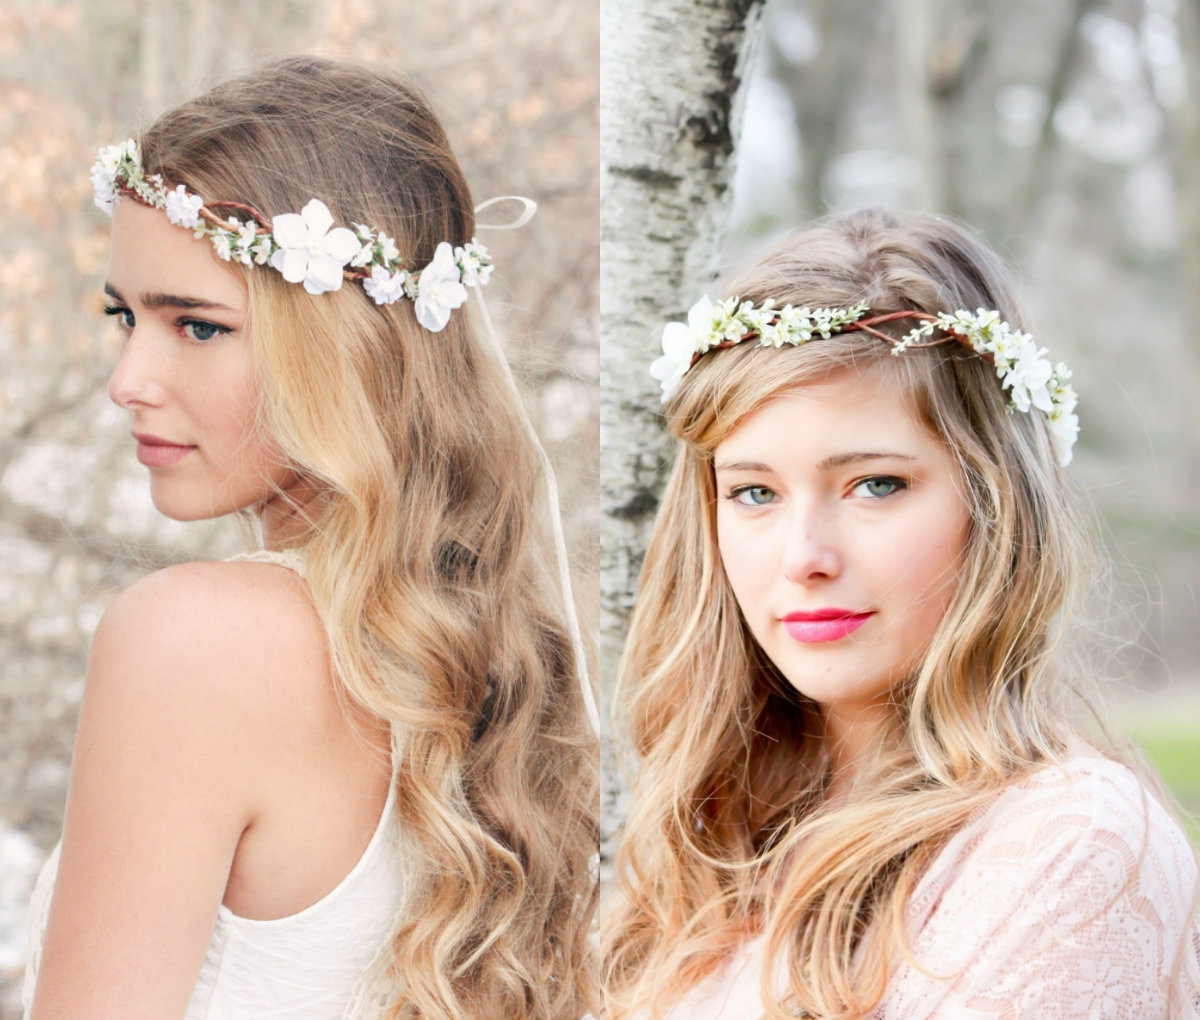 Flower crown wedding hairstyles to marry this summer hairstyles thin flower crown bridal hairstyles izmirmasajfo